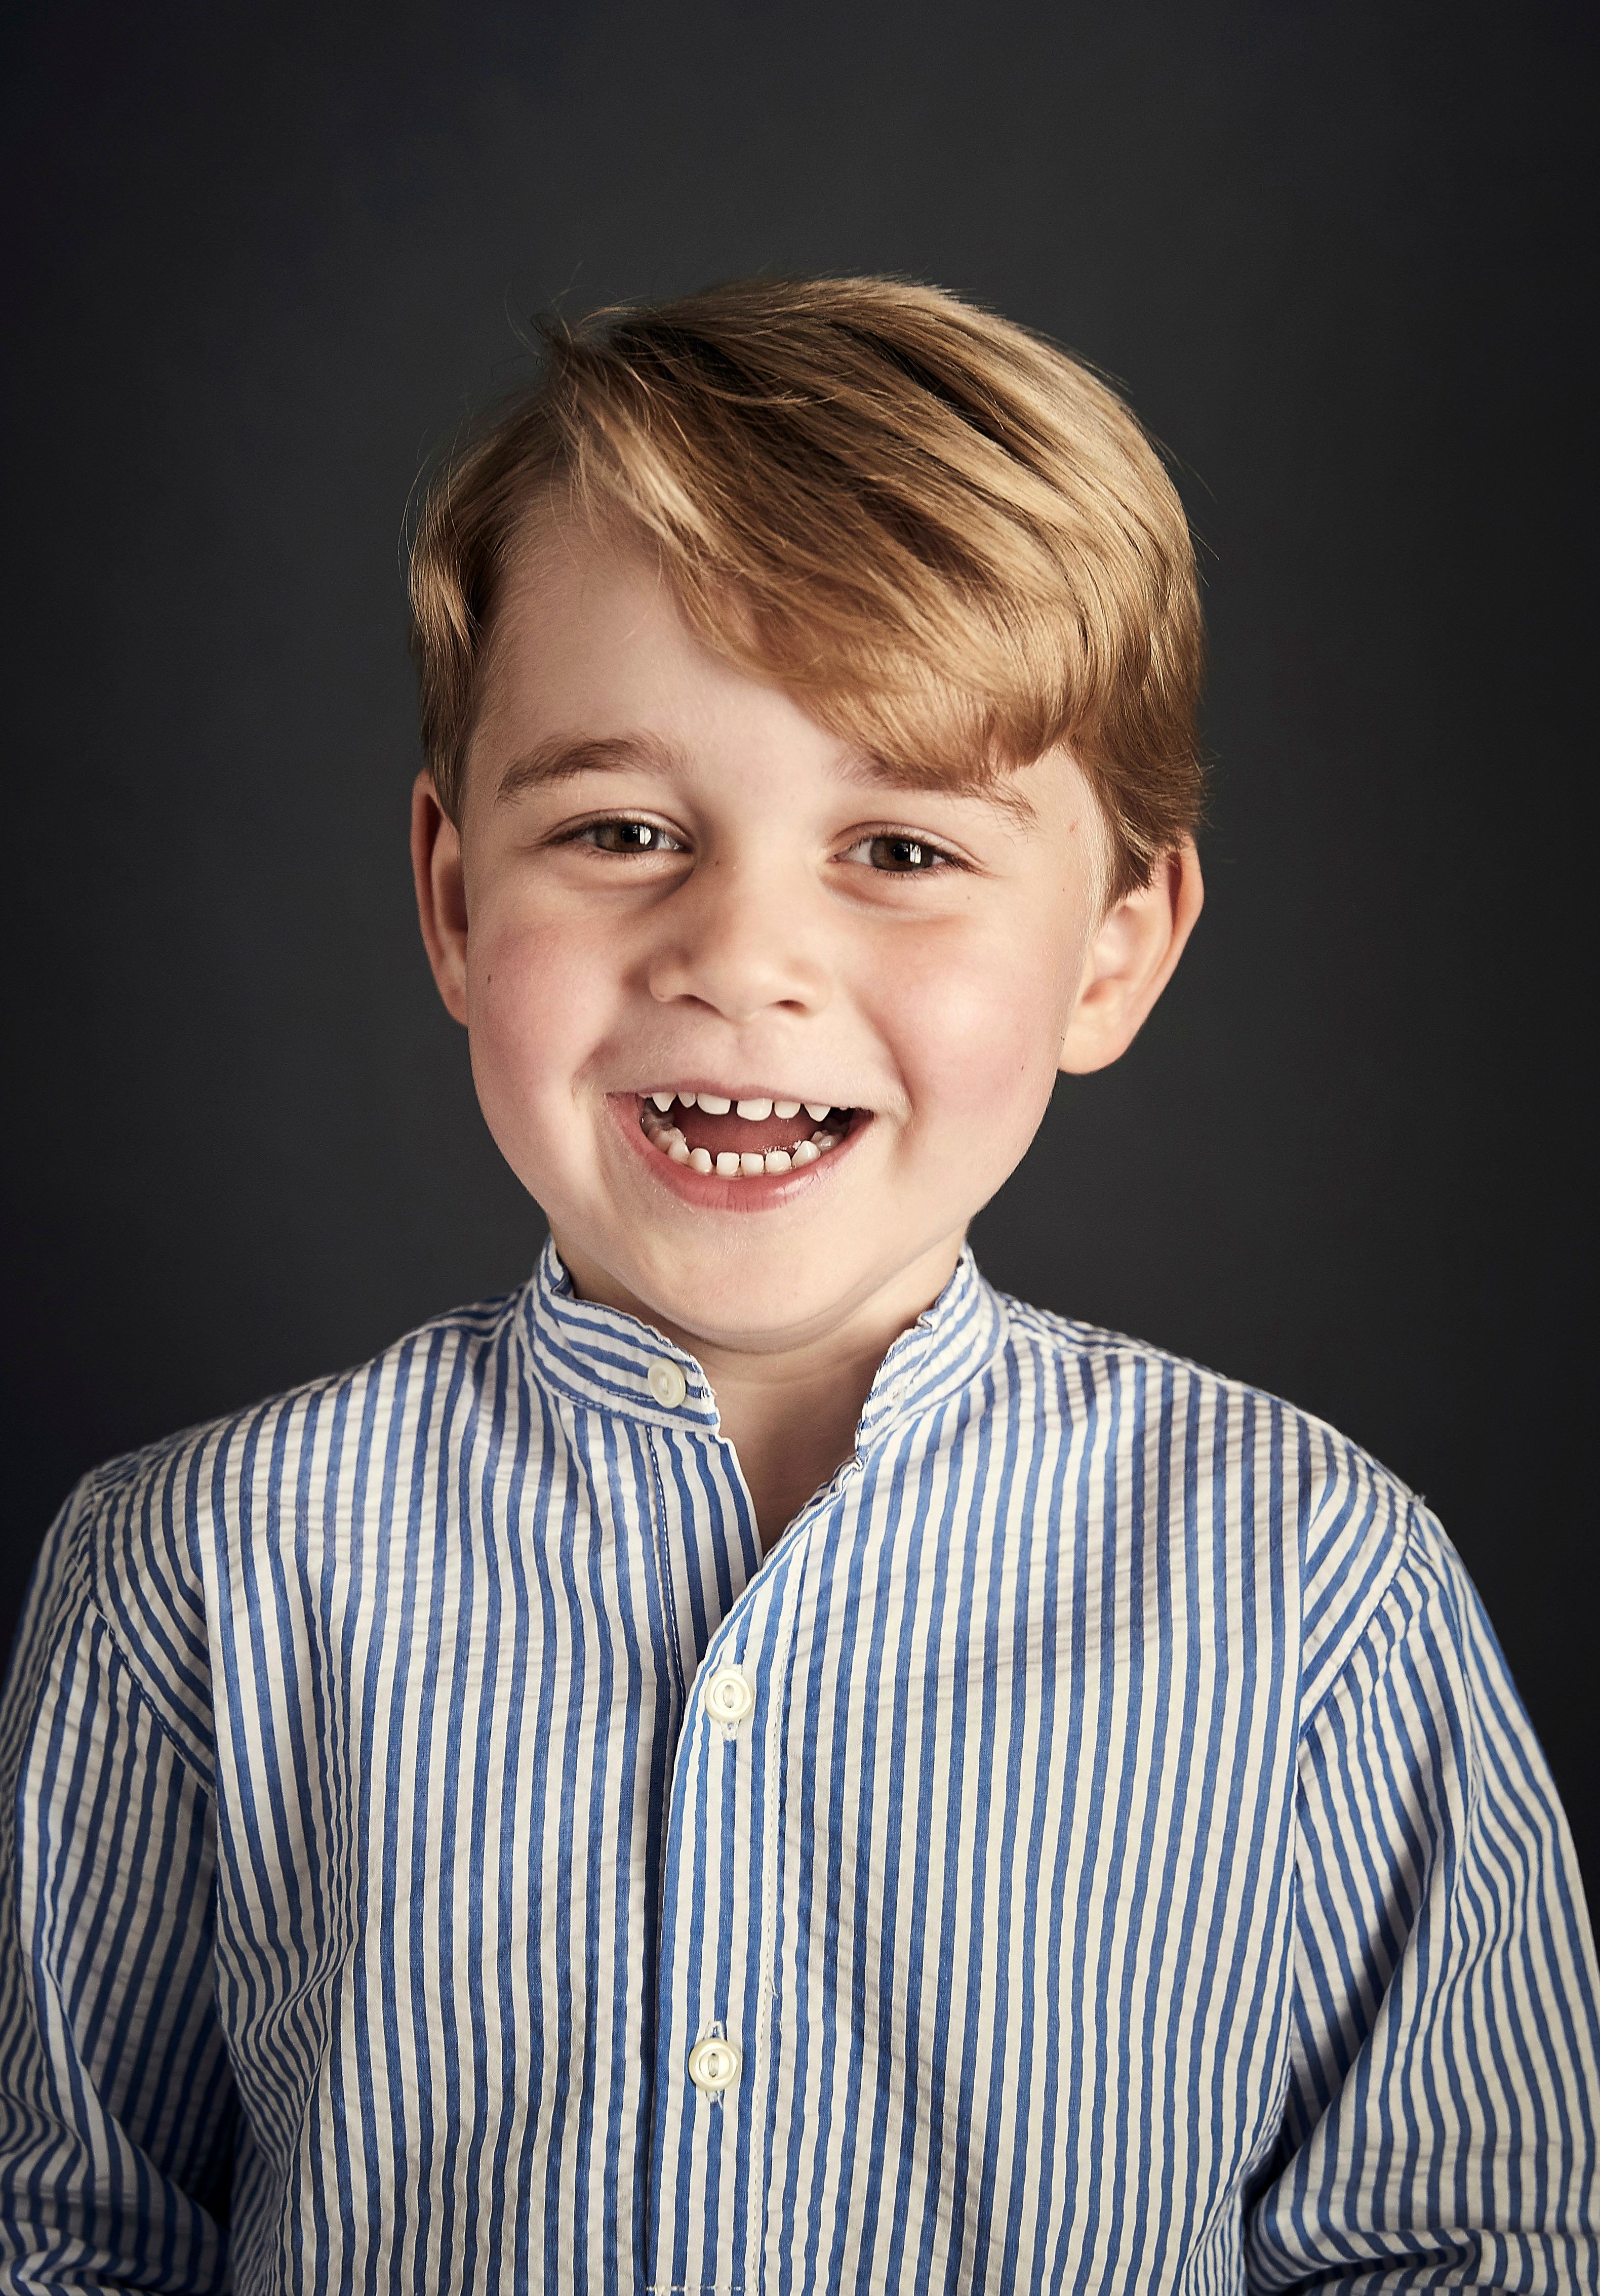 Prince George Looks Grown Up In Official Portrait To Celebrate His 4th